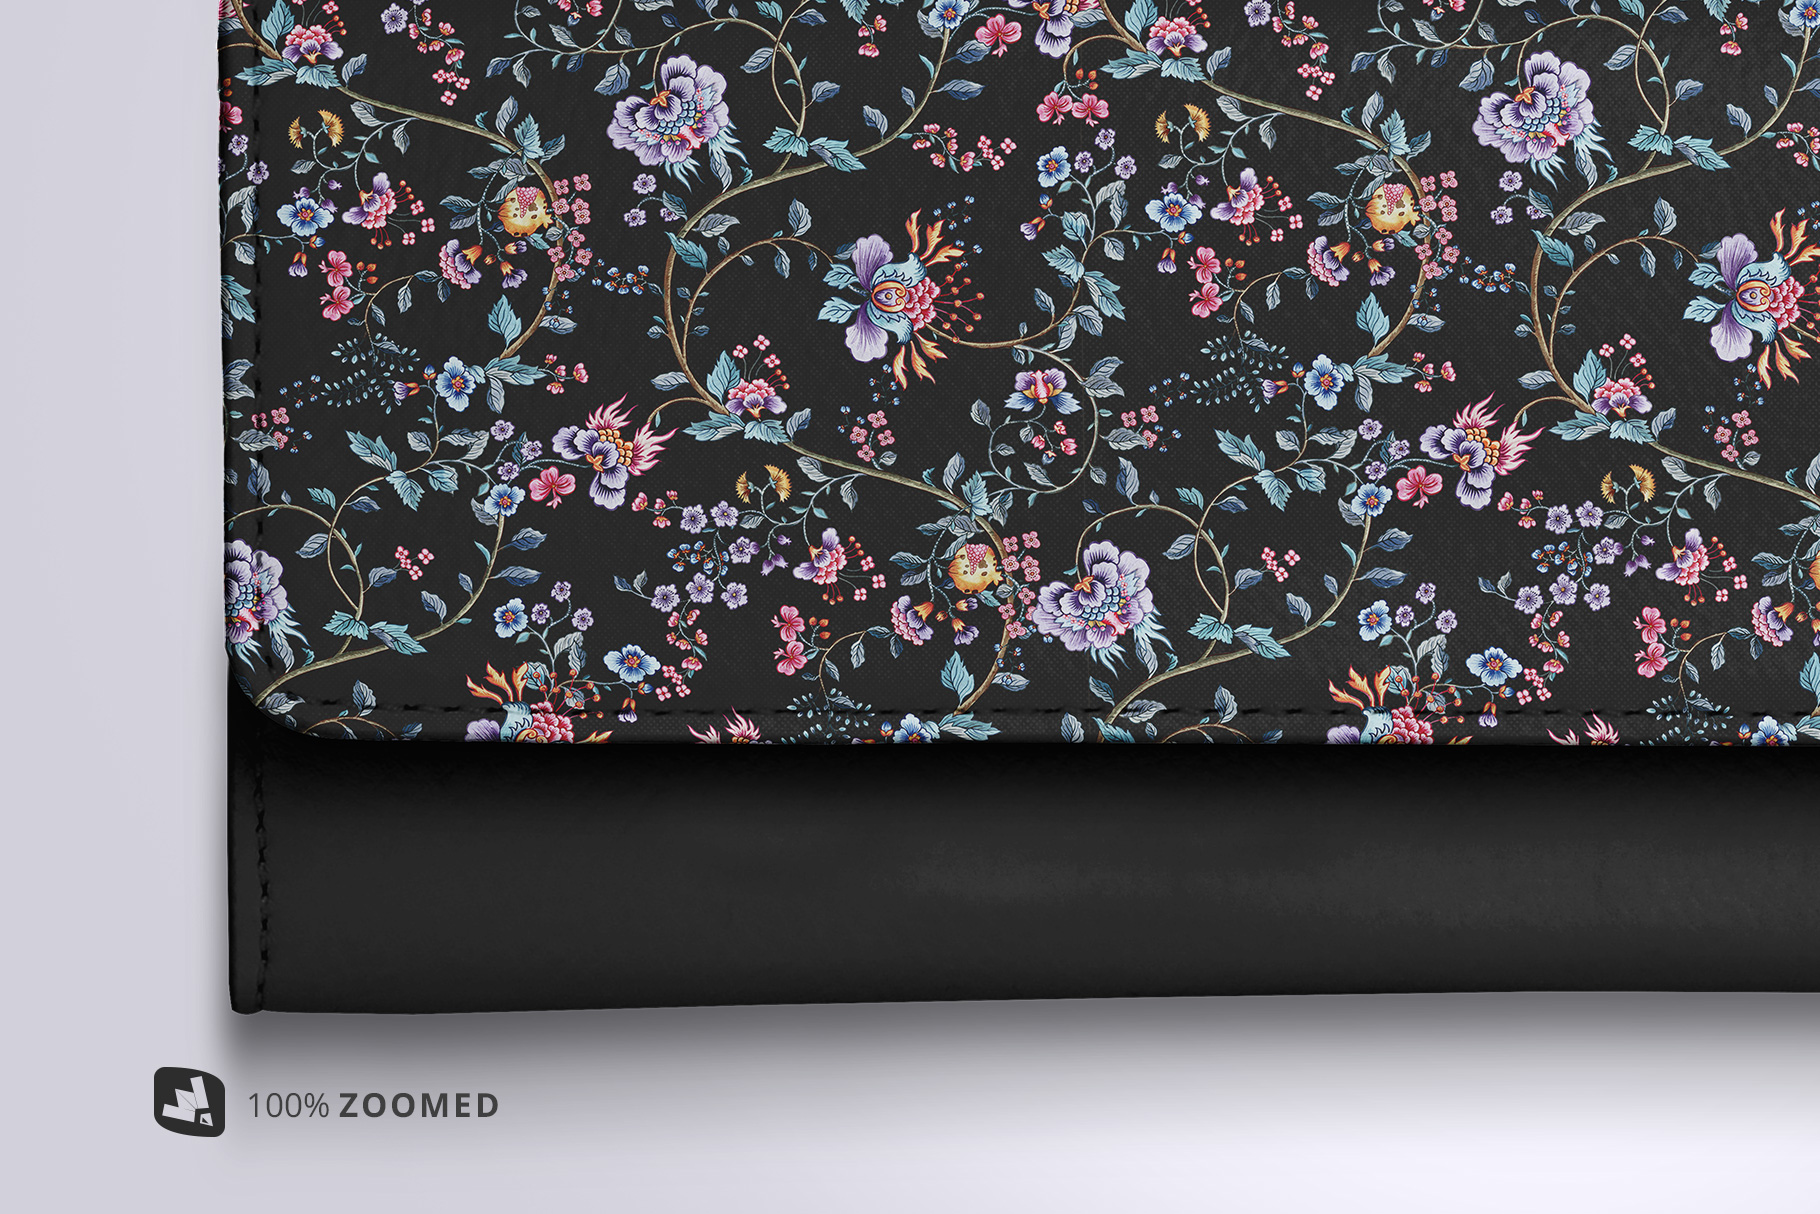 zoomed in image of the top view women's purse mockup